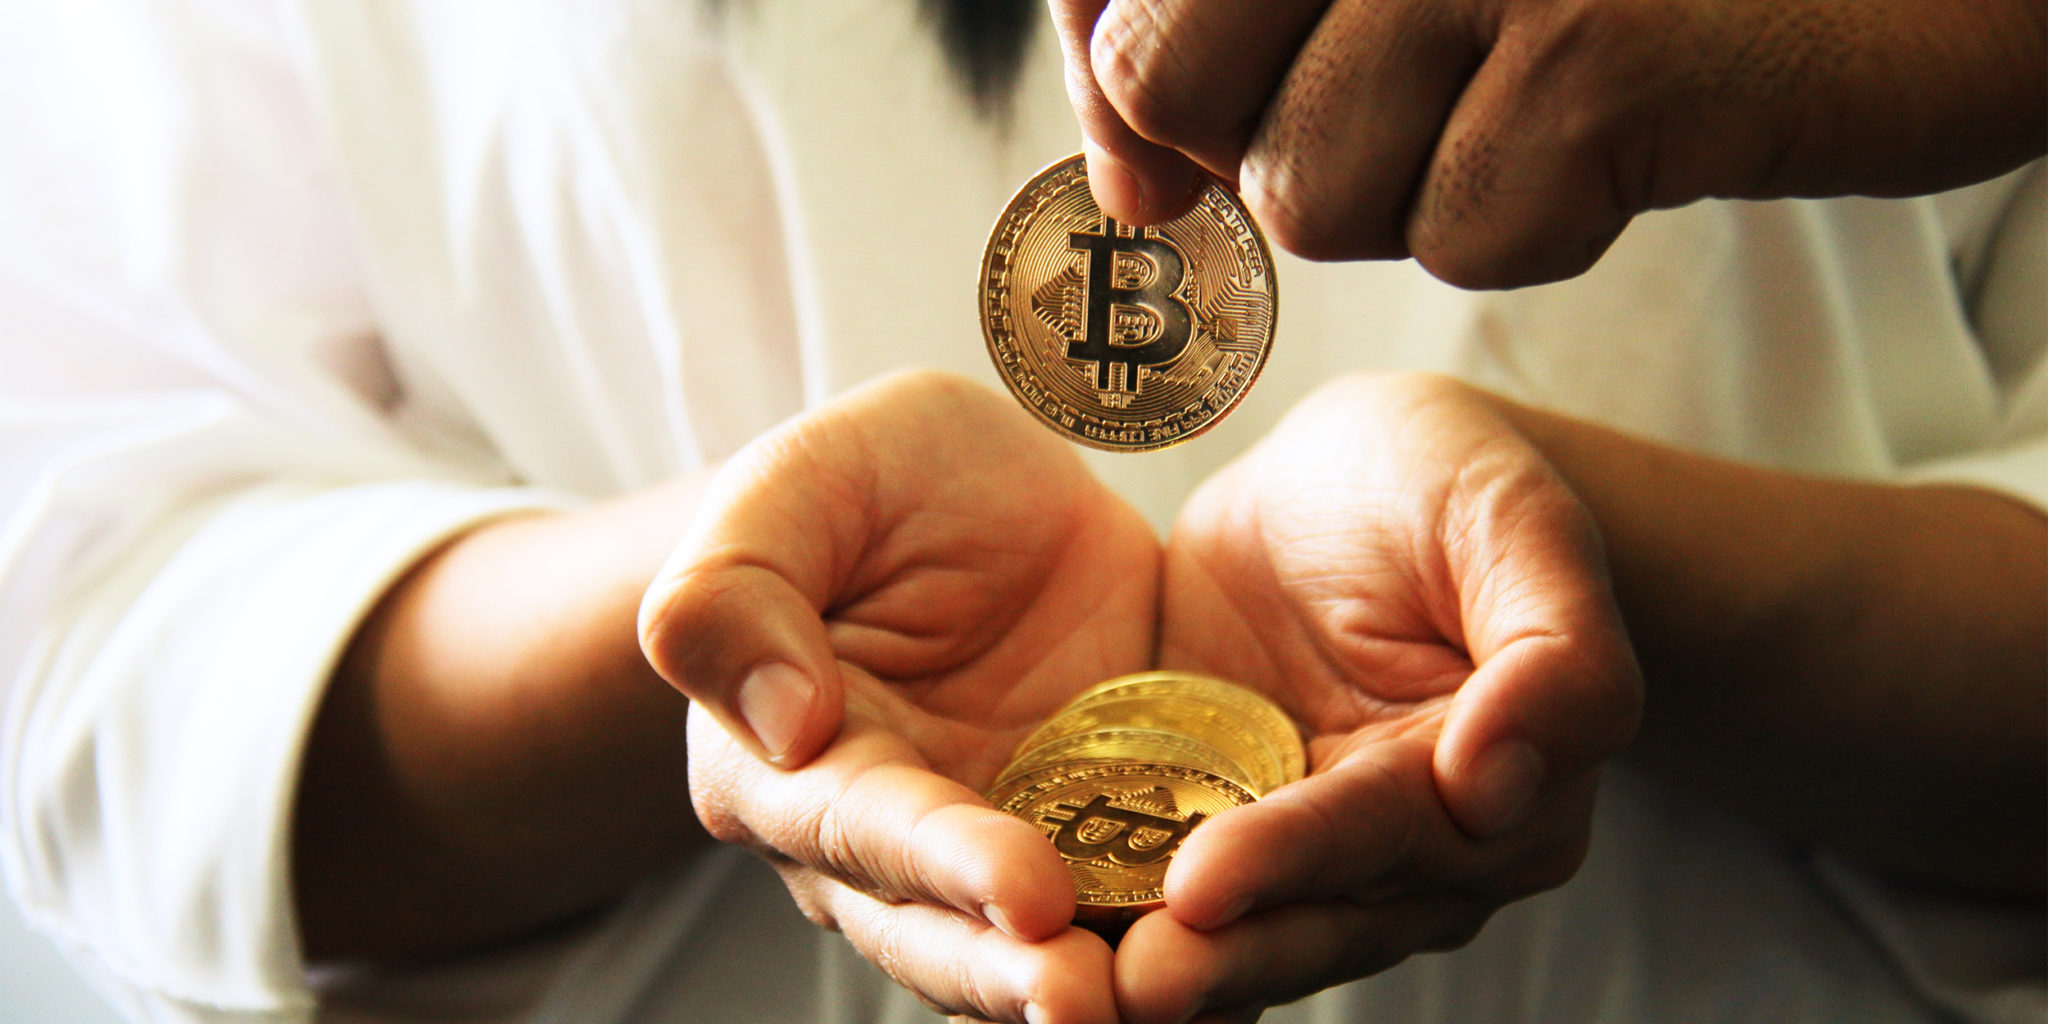 Picture of a hand holding Bitcoins, with another hand dropping a bitcoin in it